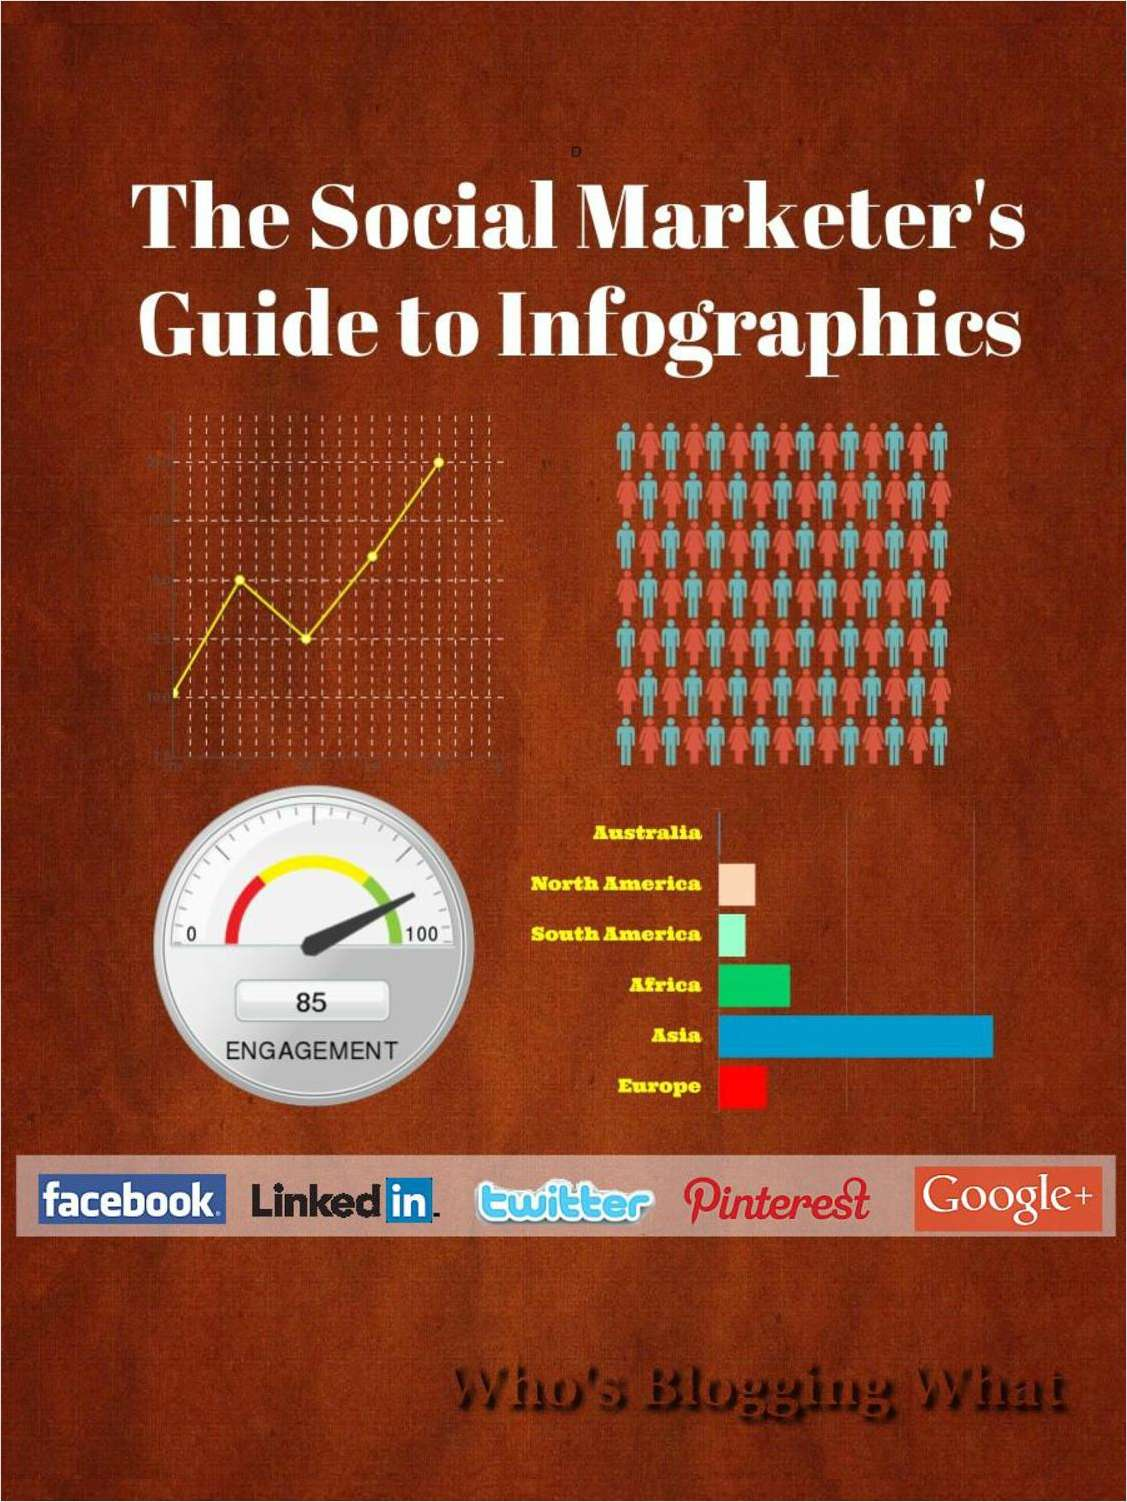 The Social Marketer's Guide to Infographics